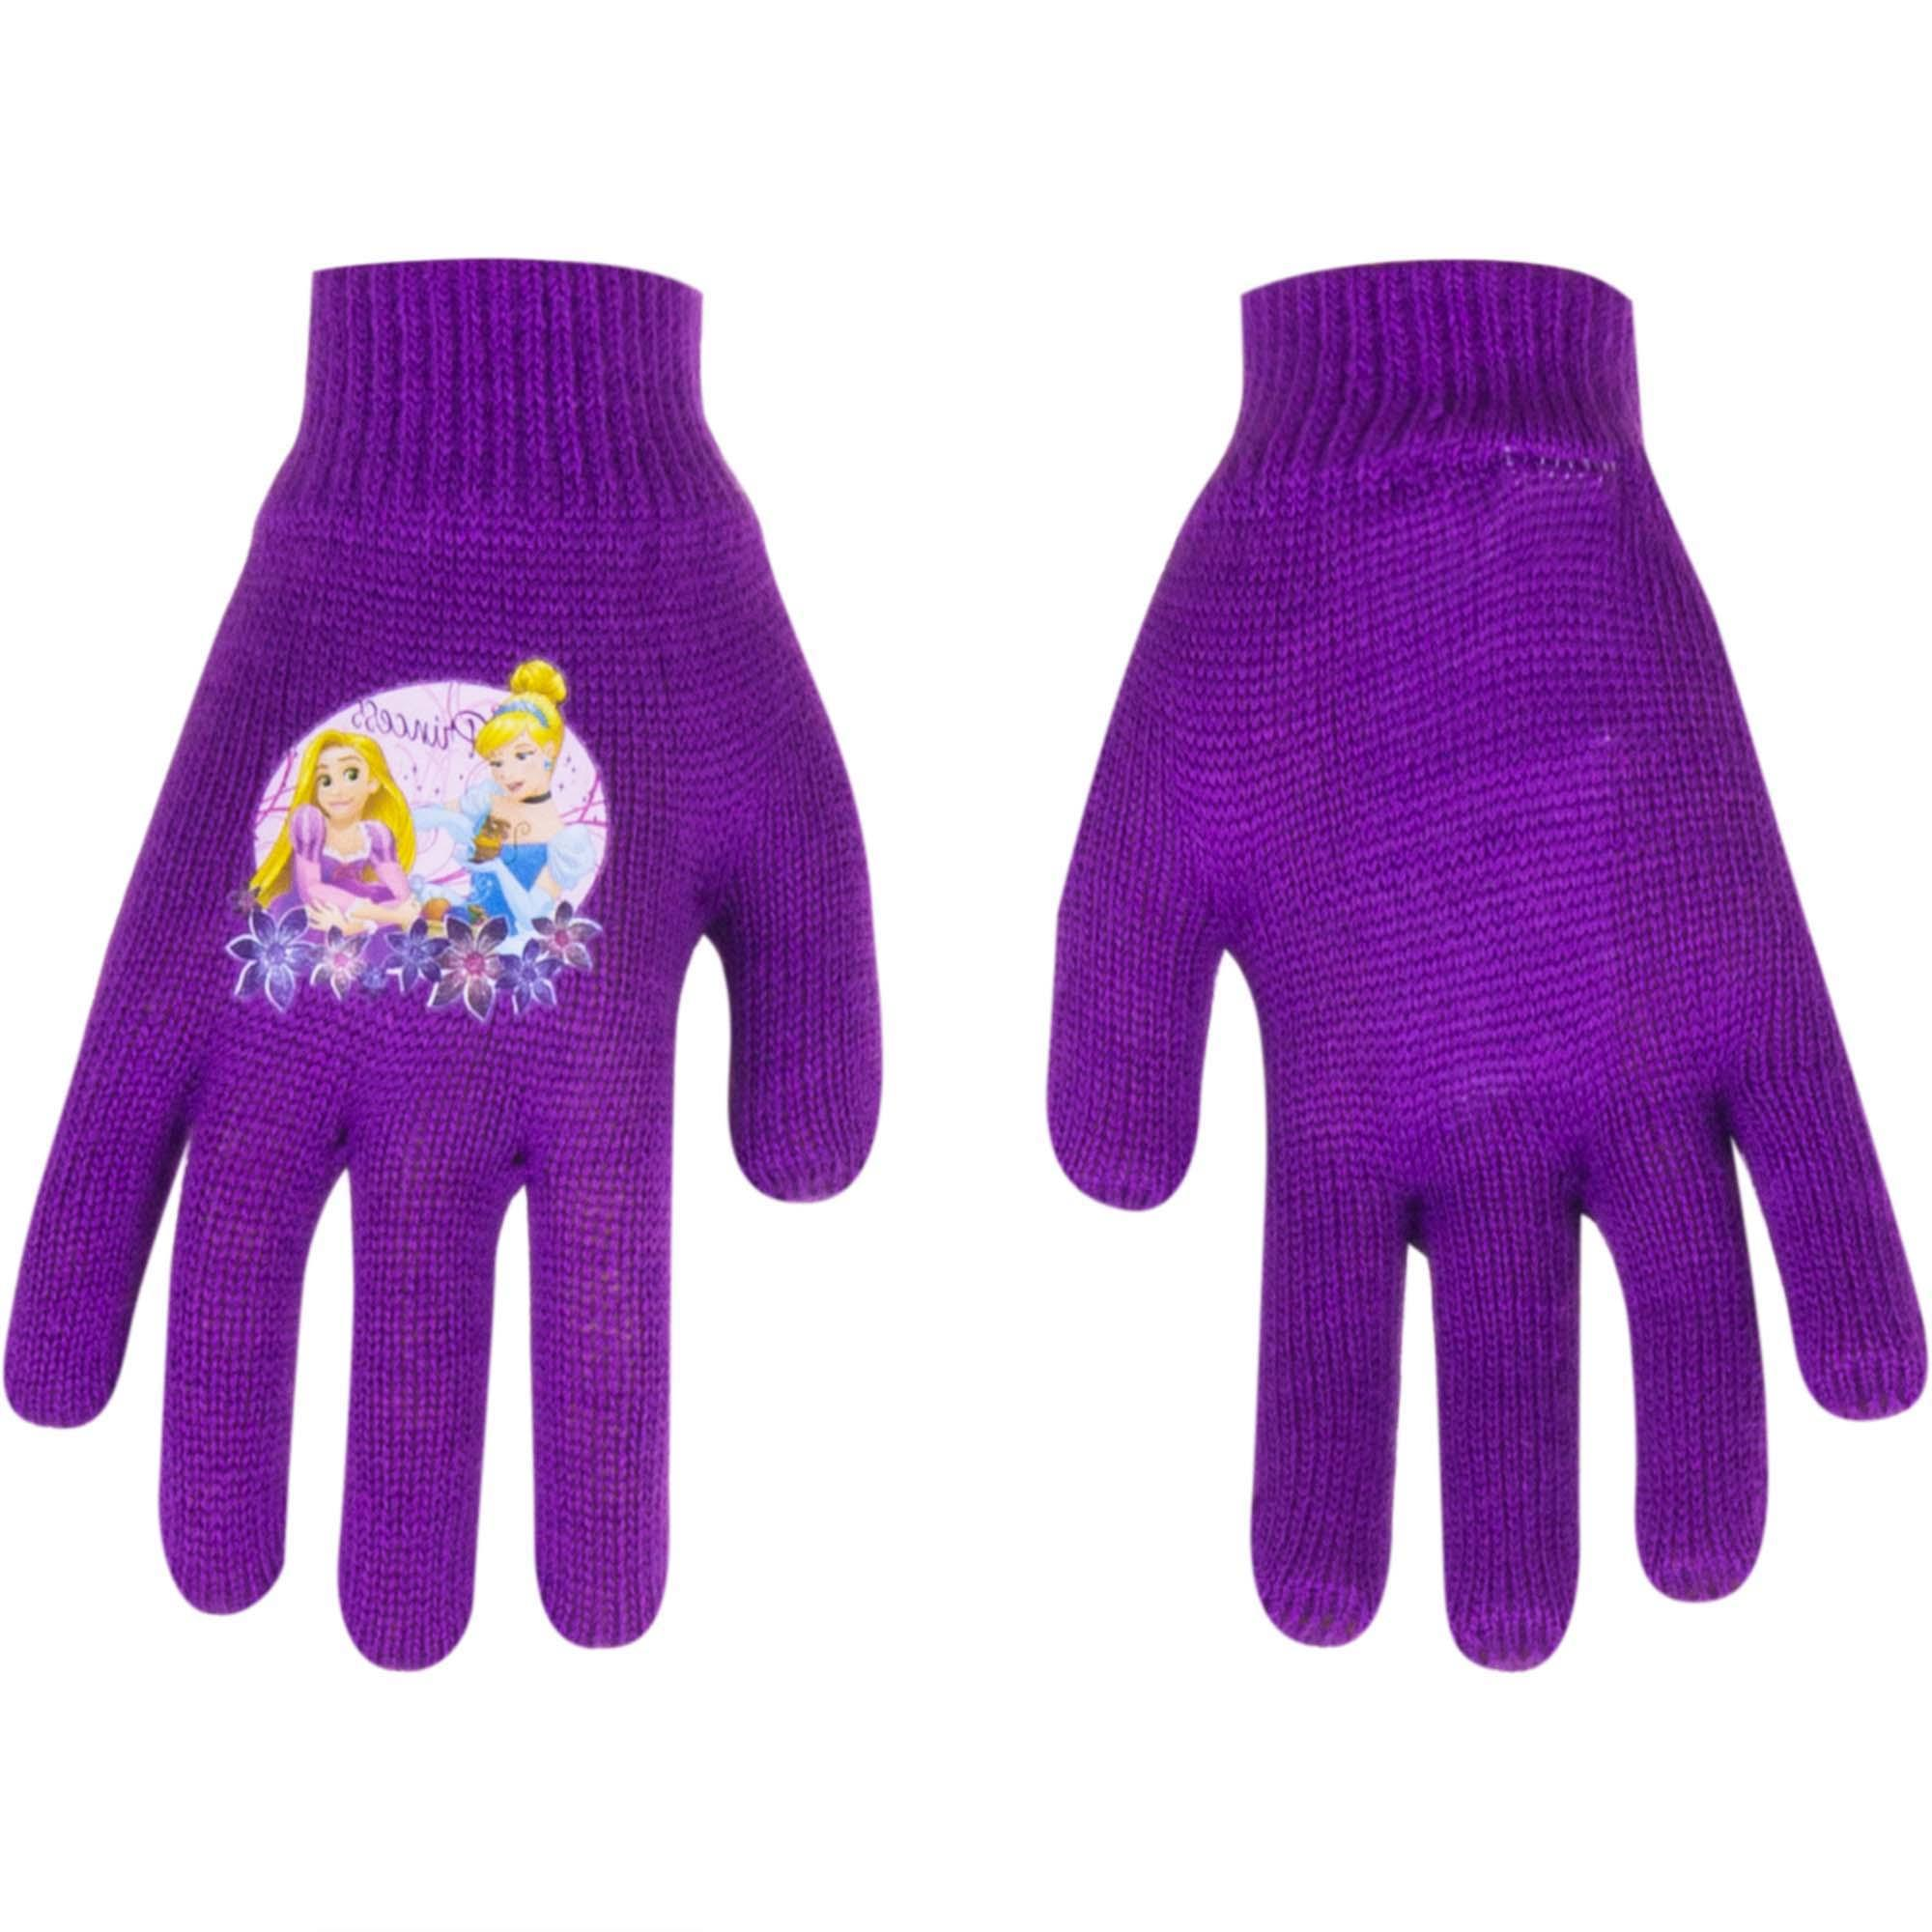 Princess gloves Magic Purle (Age: 2-5 years old)